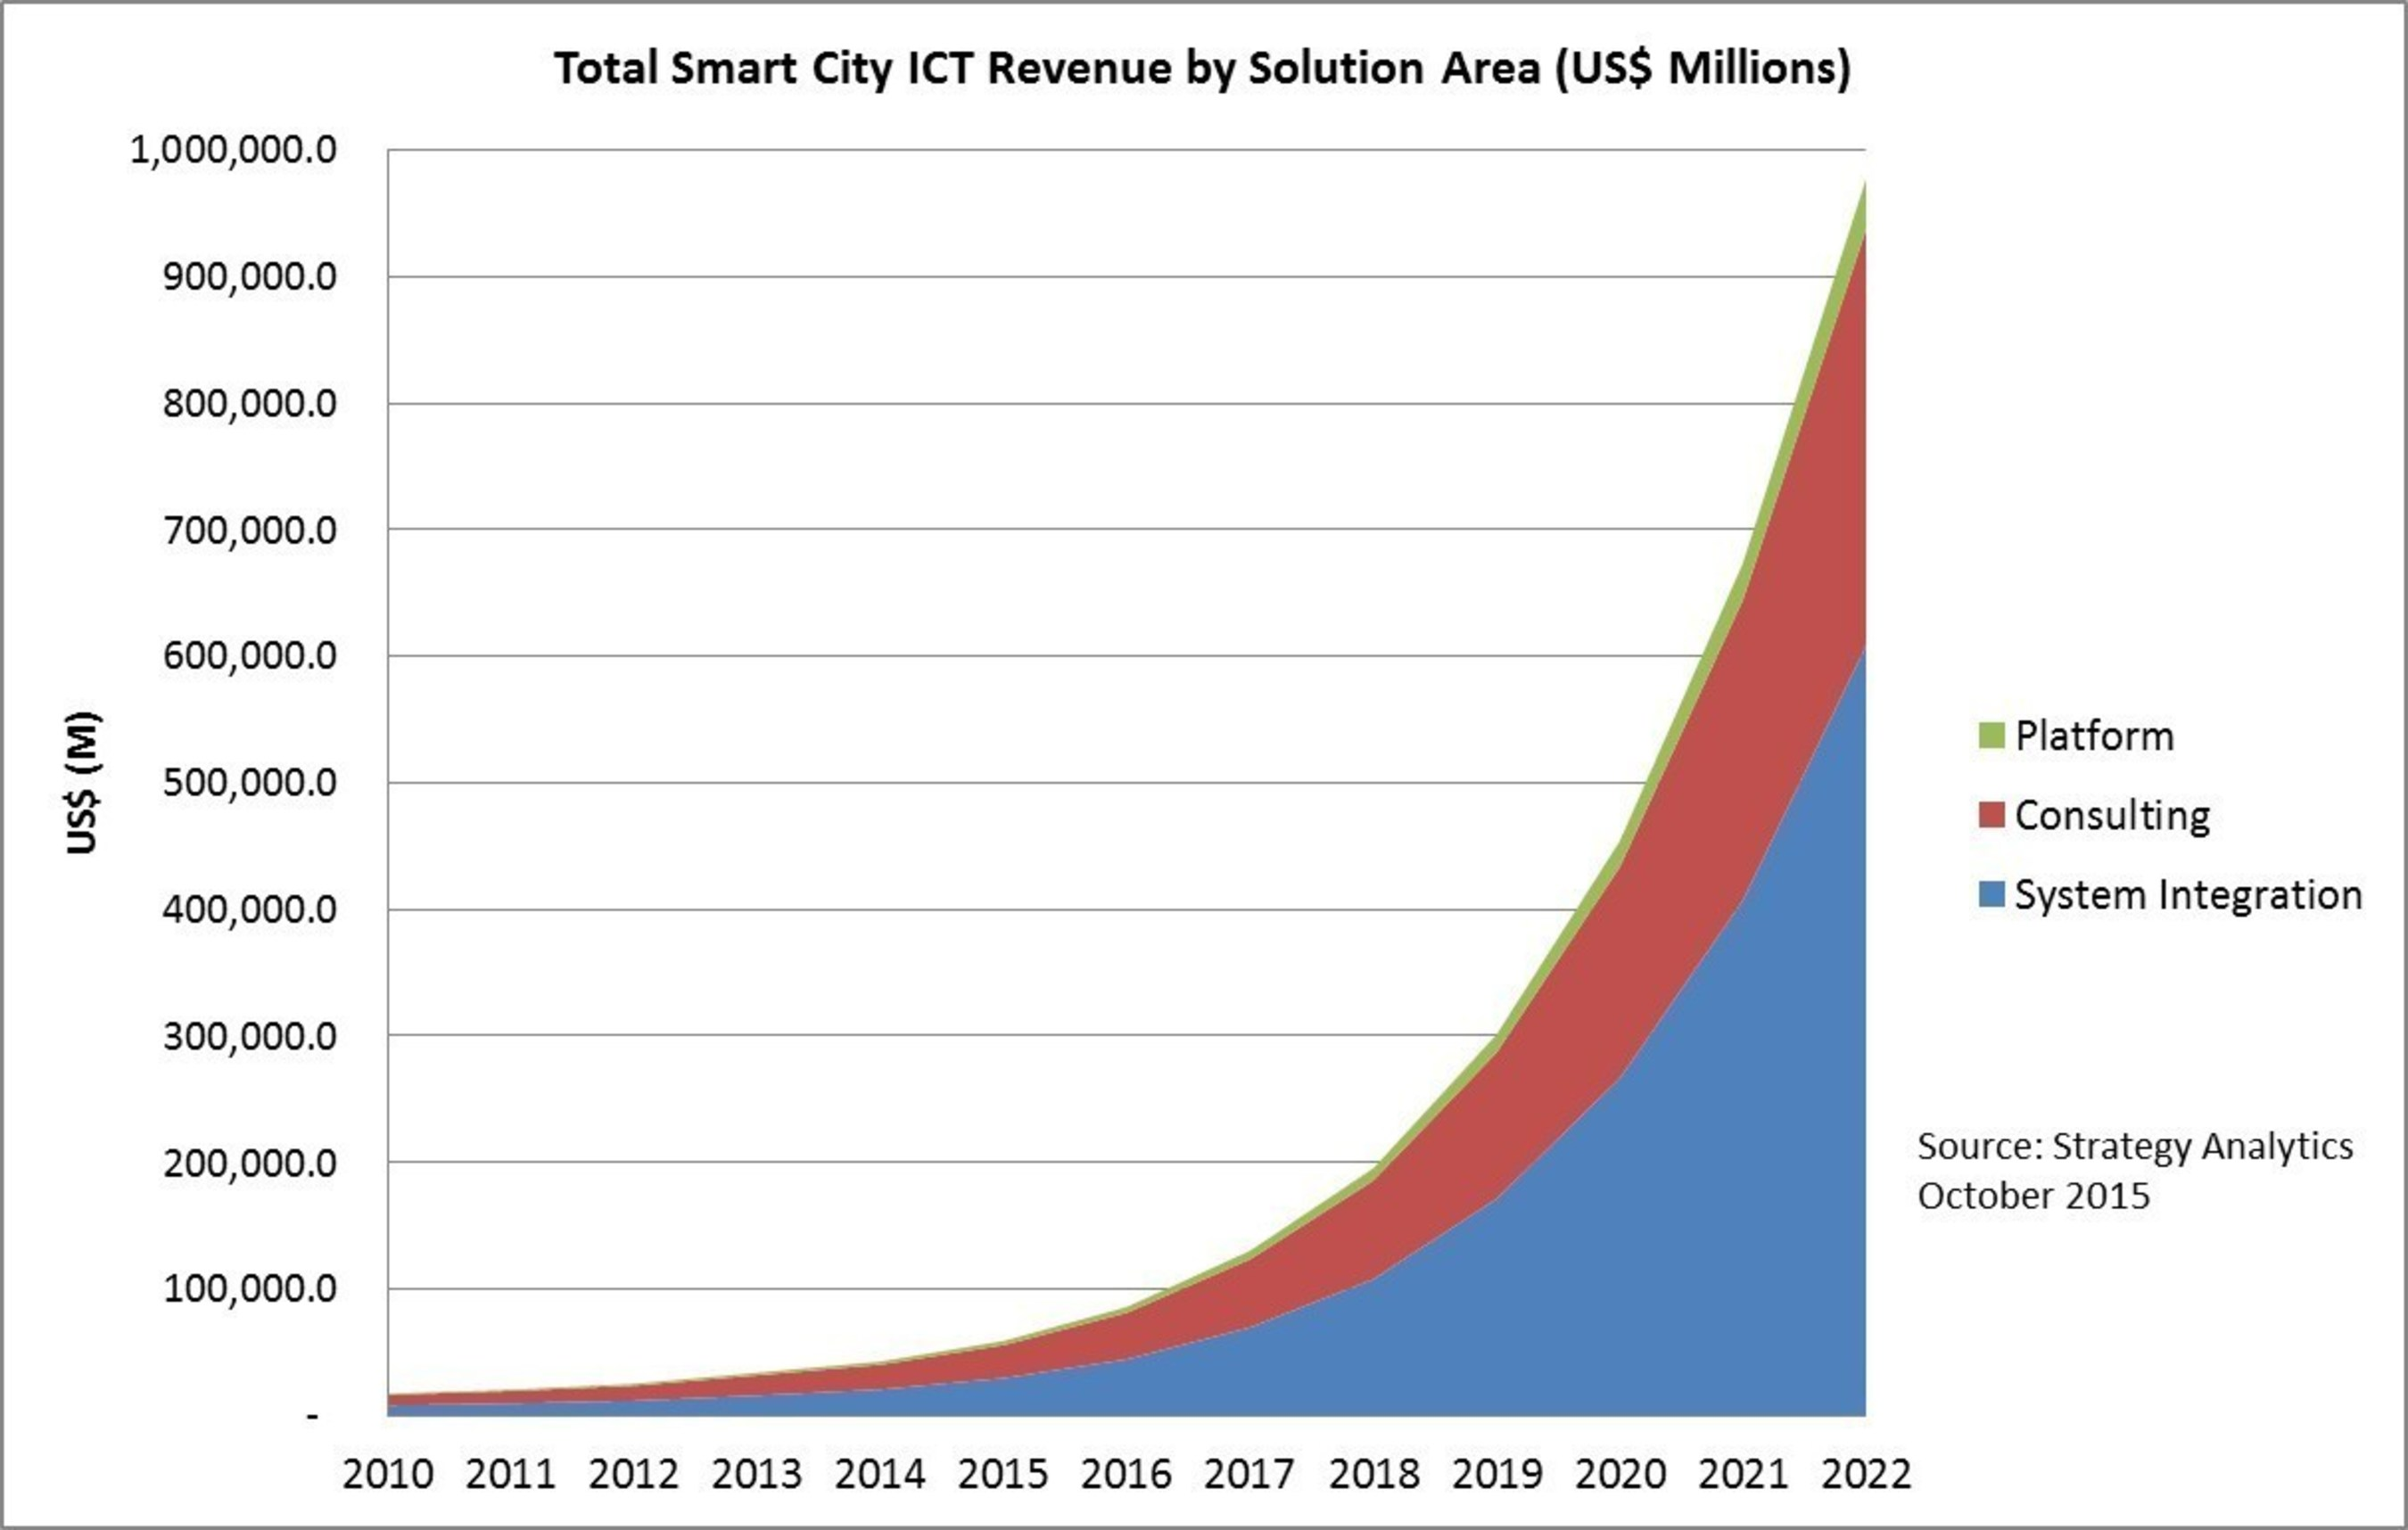 Strategy Analytics: Smart City ICT revenues are forecast to reach $977 Billion by 2022